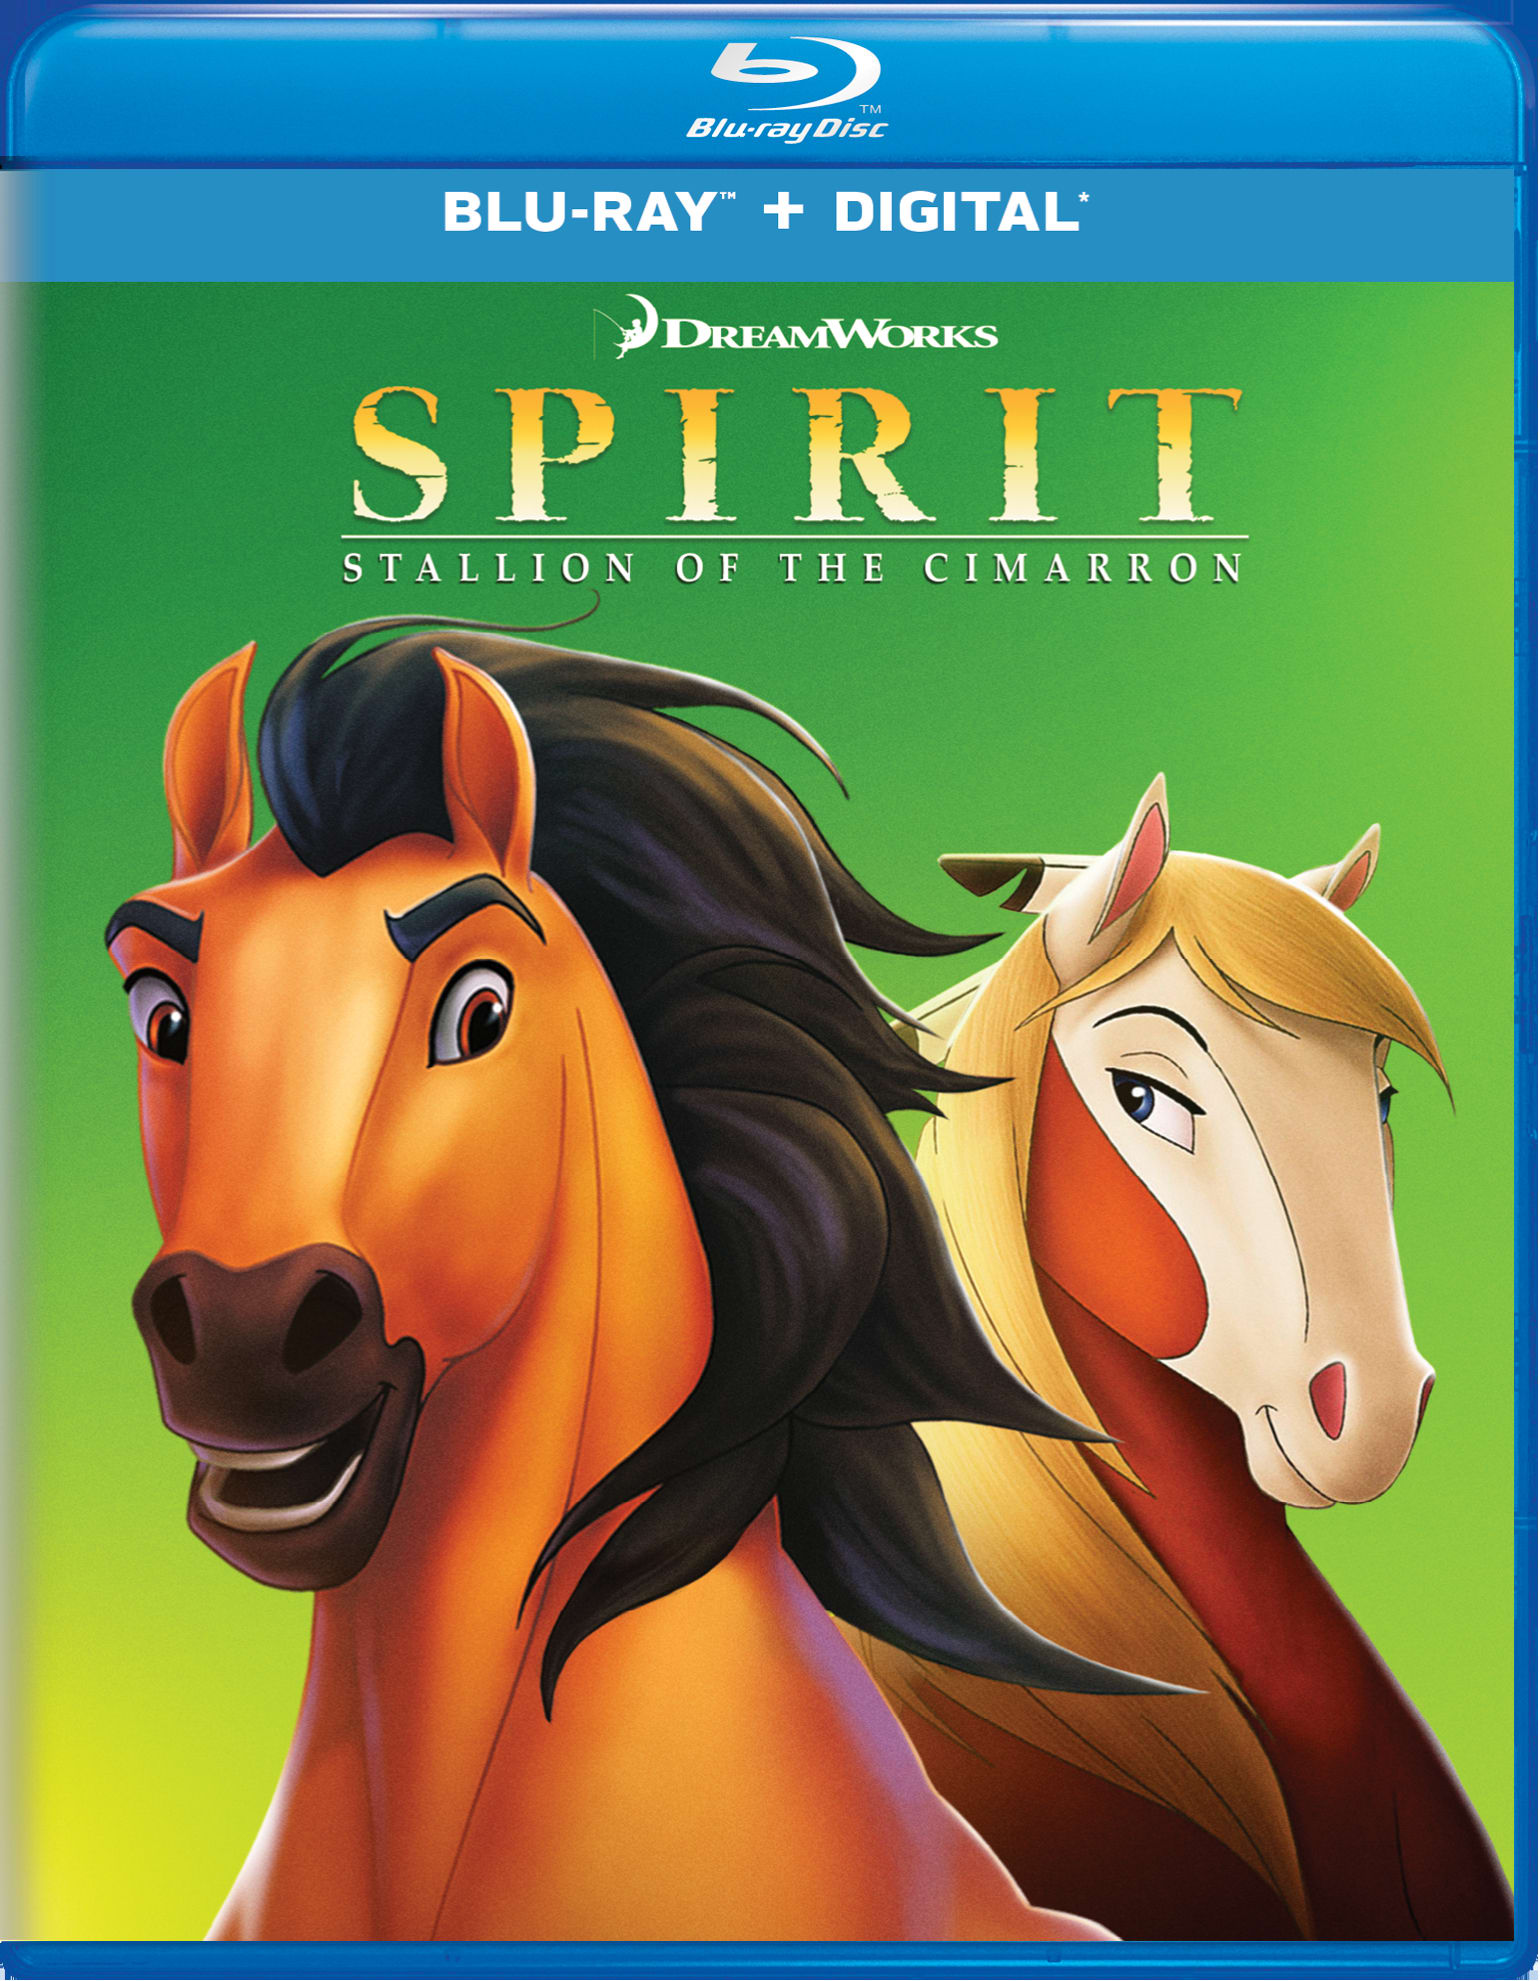 Spirit - Stallion of the Cimarron [Blu-ray]